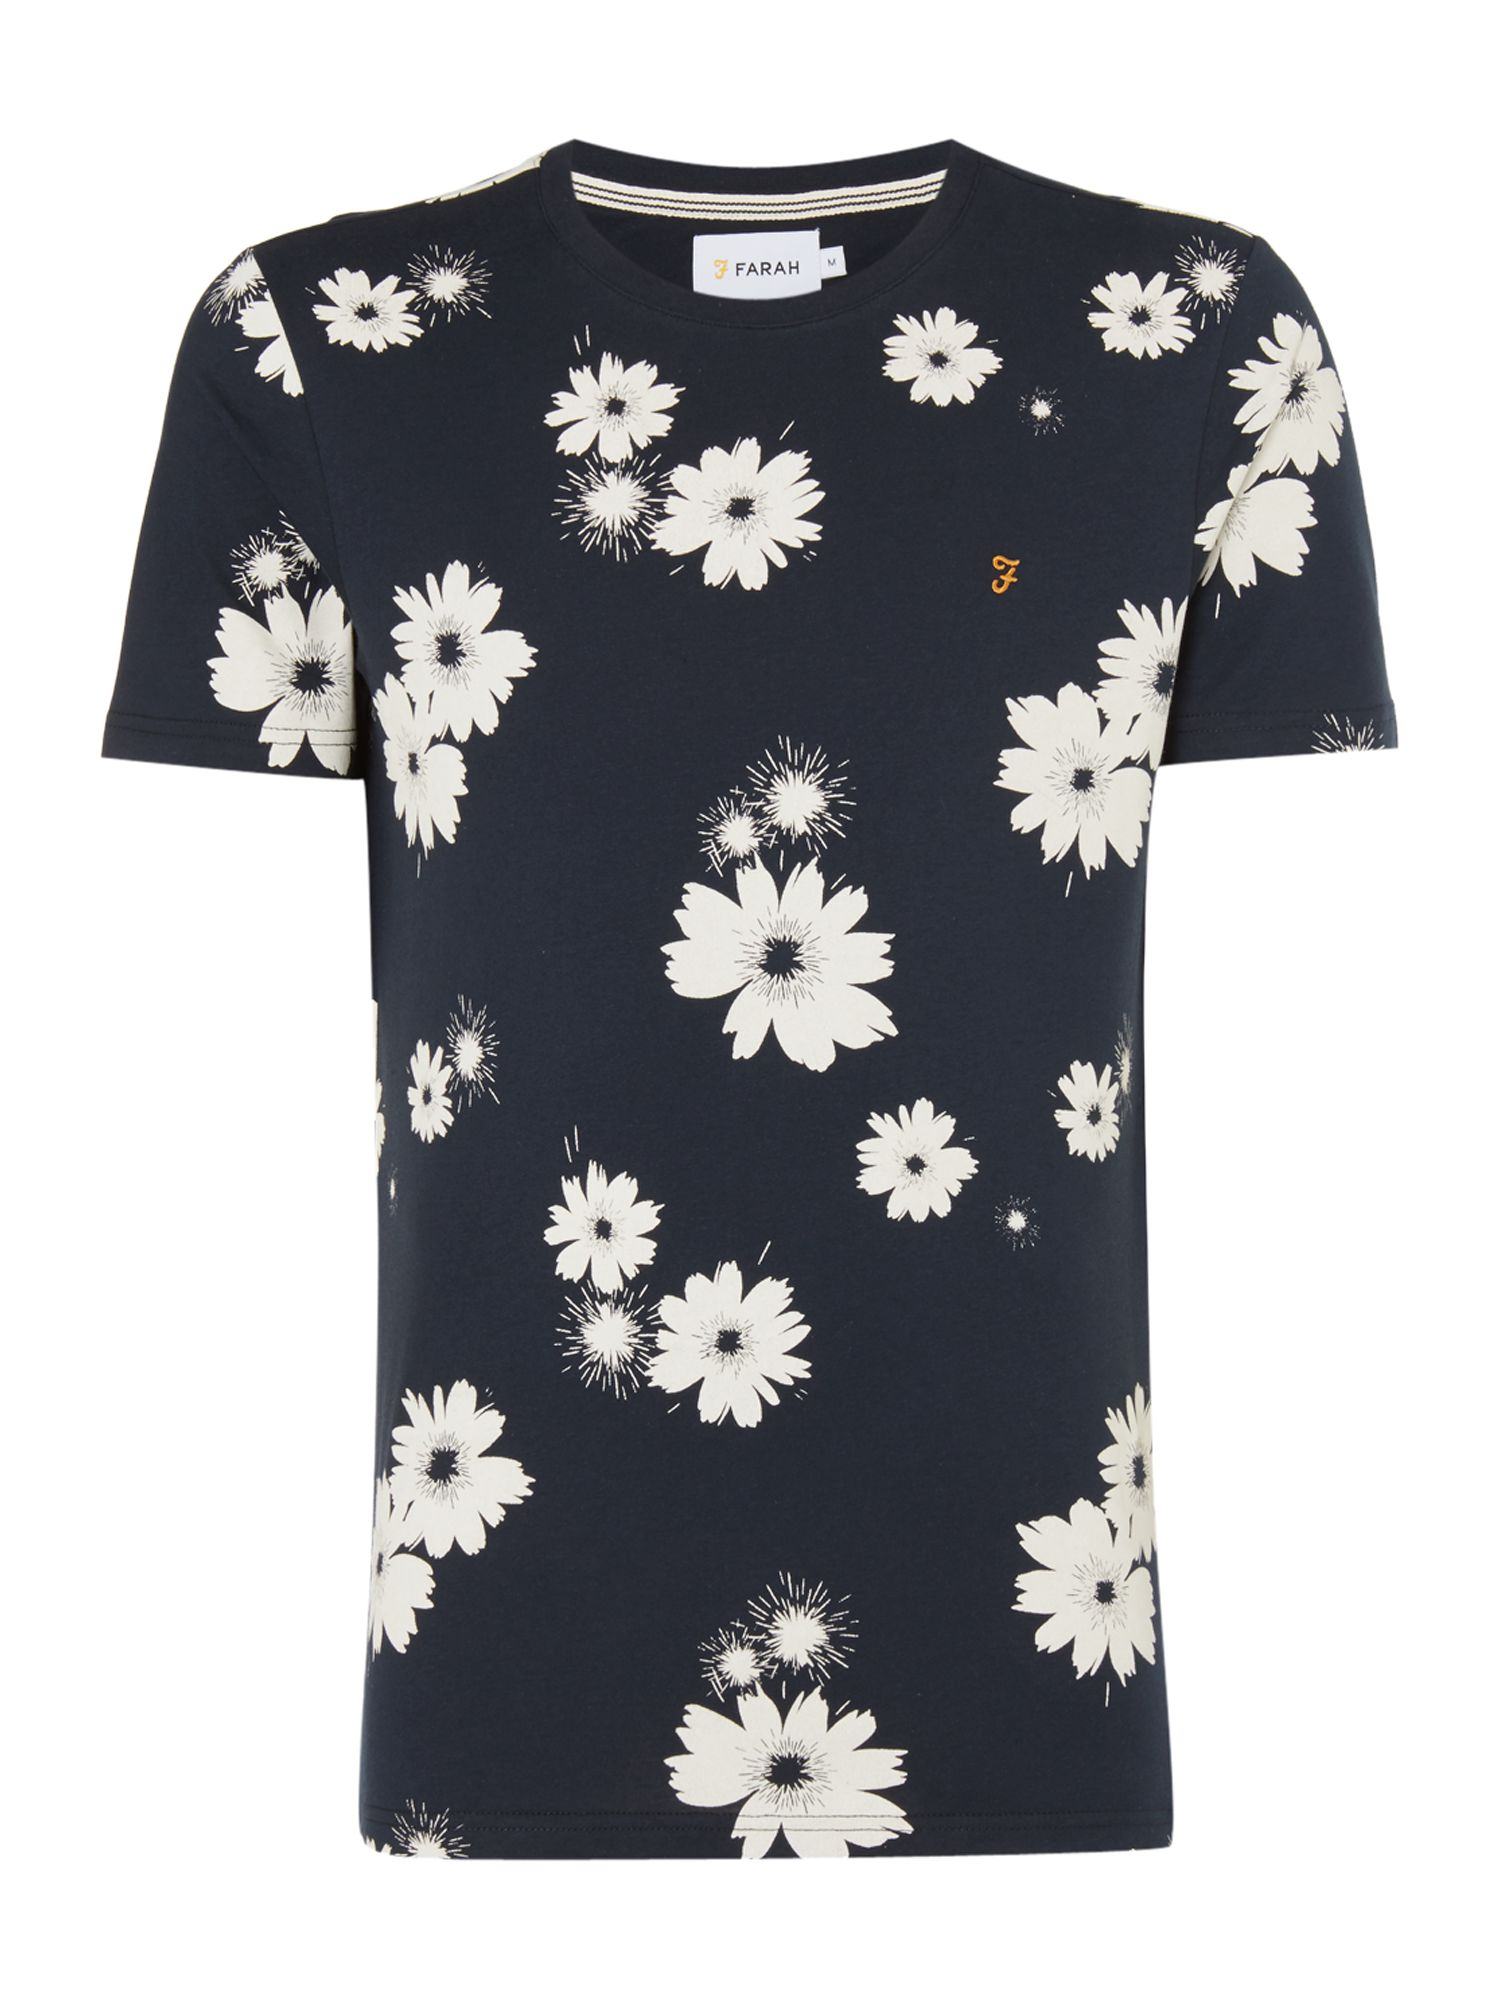 Men's Farah Ragworth Slim Fit Floral Print Tshirt, Blue